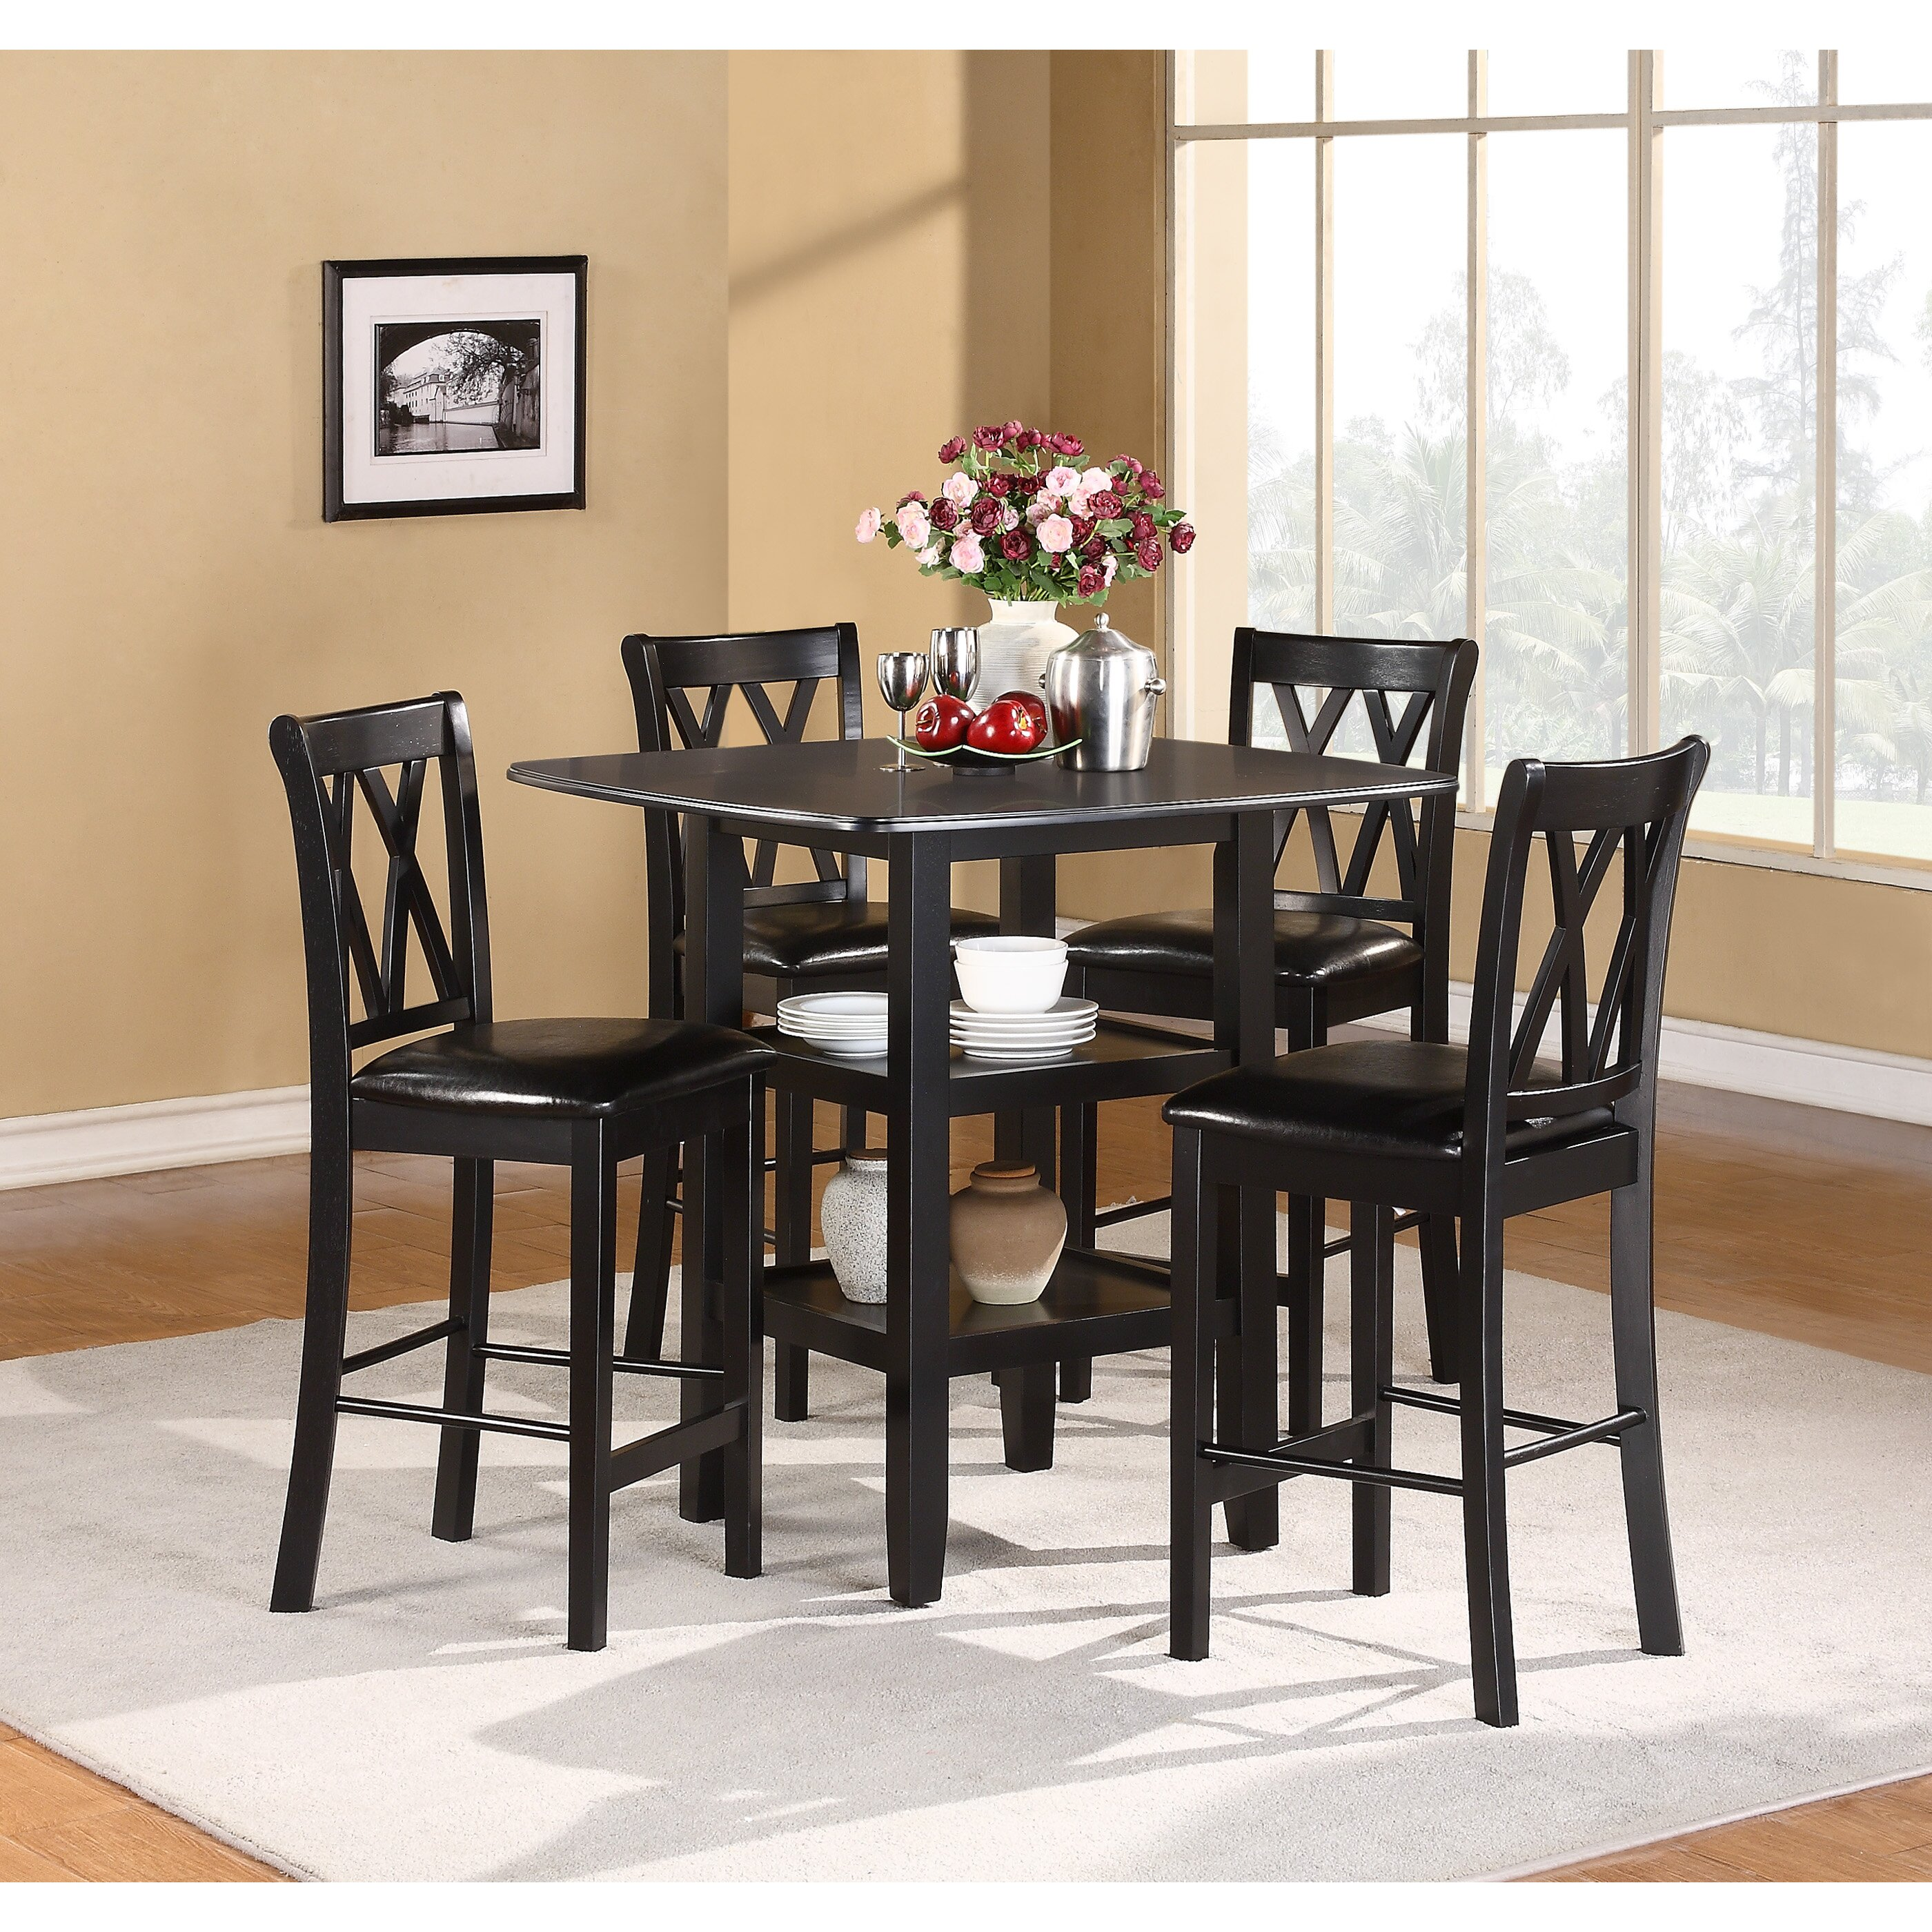 Counter Height Dining Tables: Woodhaven Hill Norman 5 Piece Counter Height Dining Set